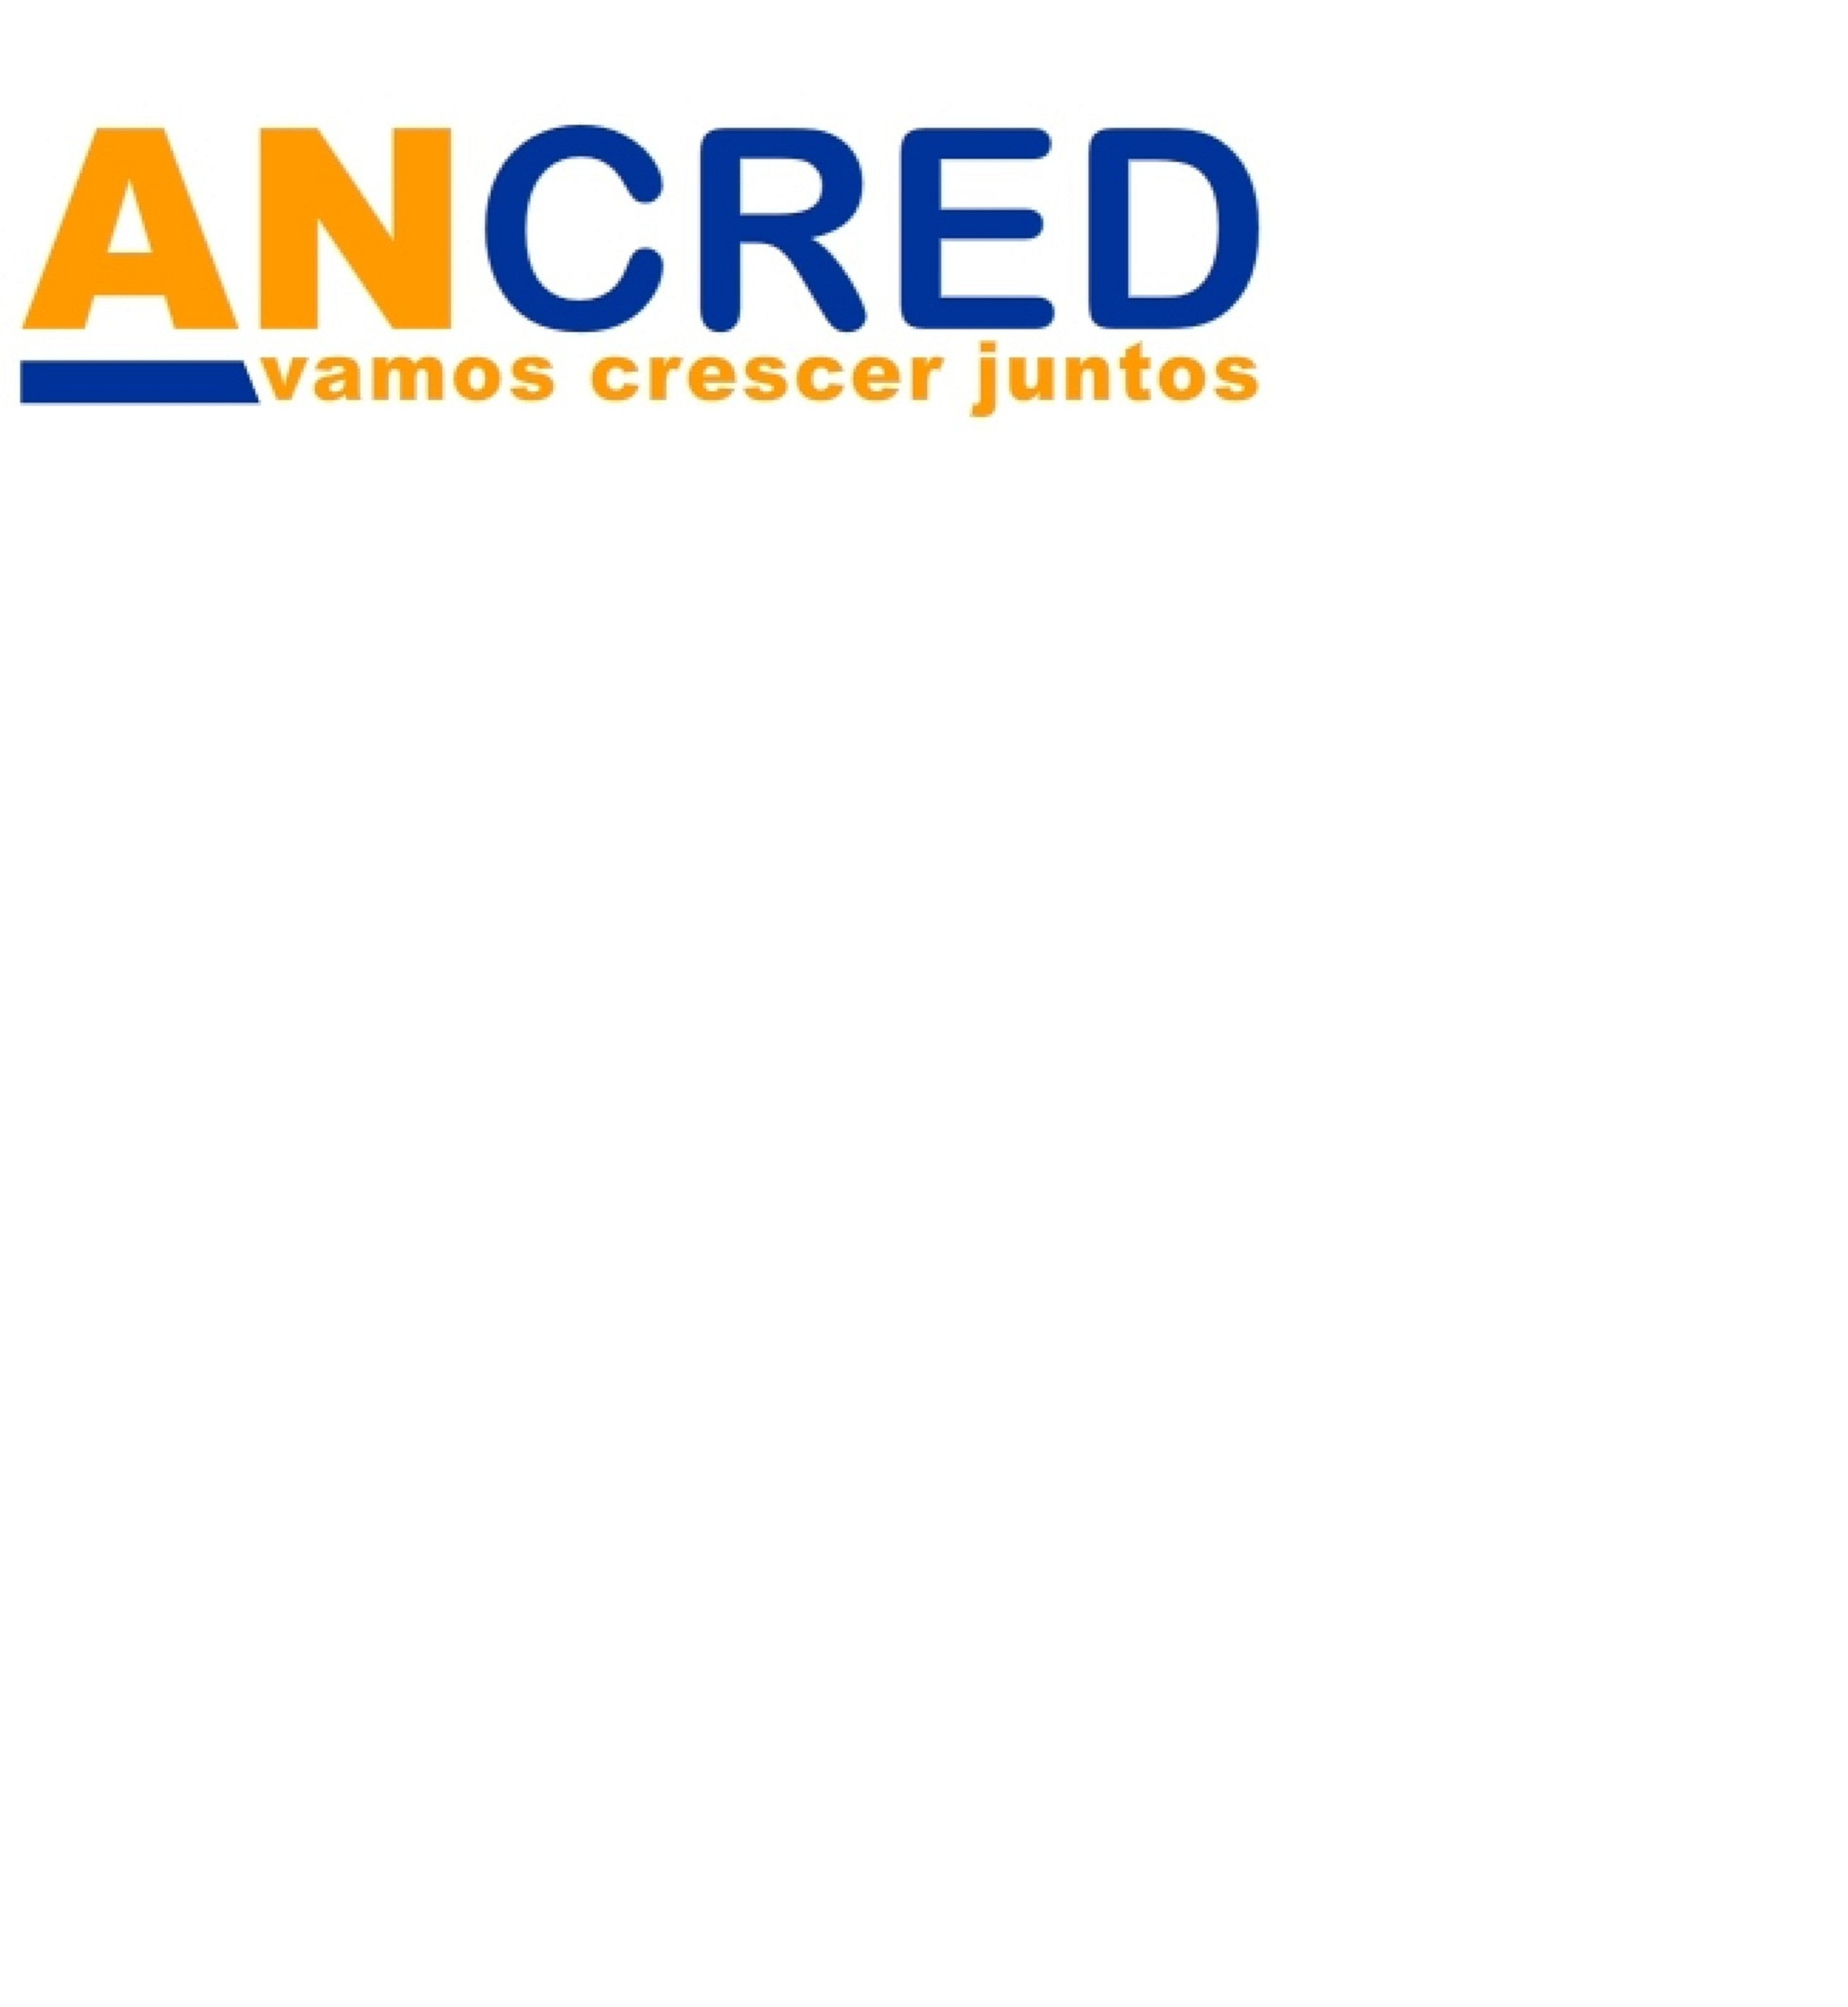 ANCRED